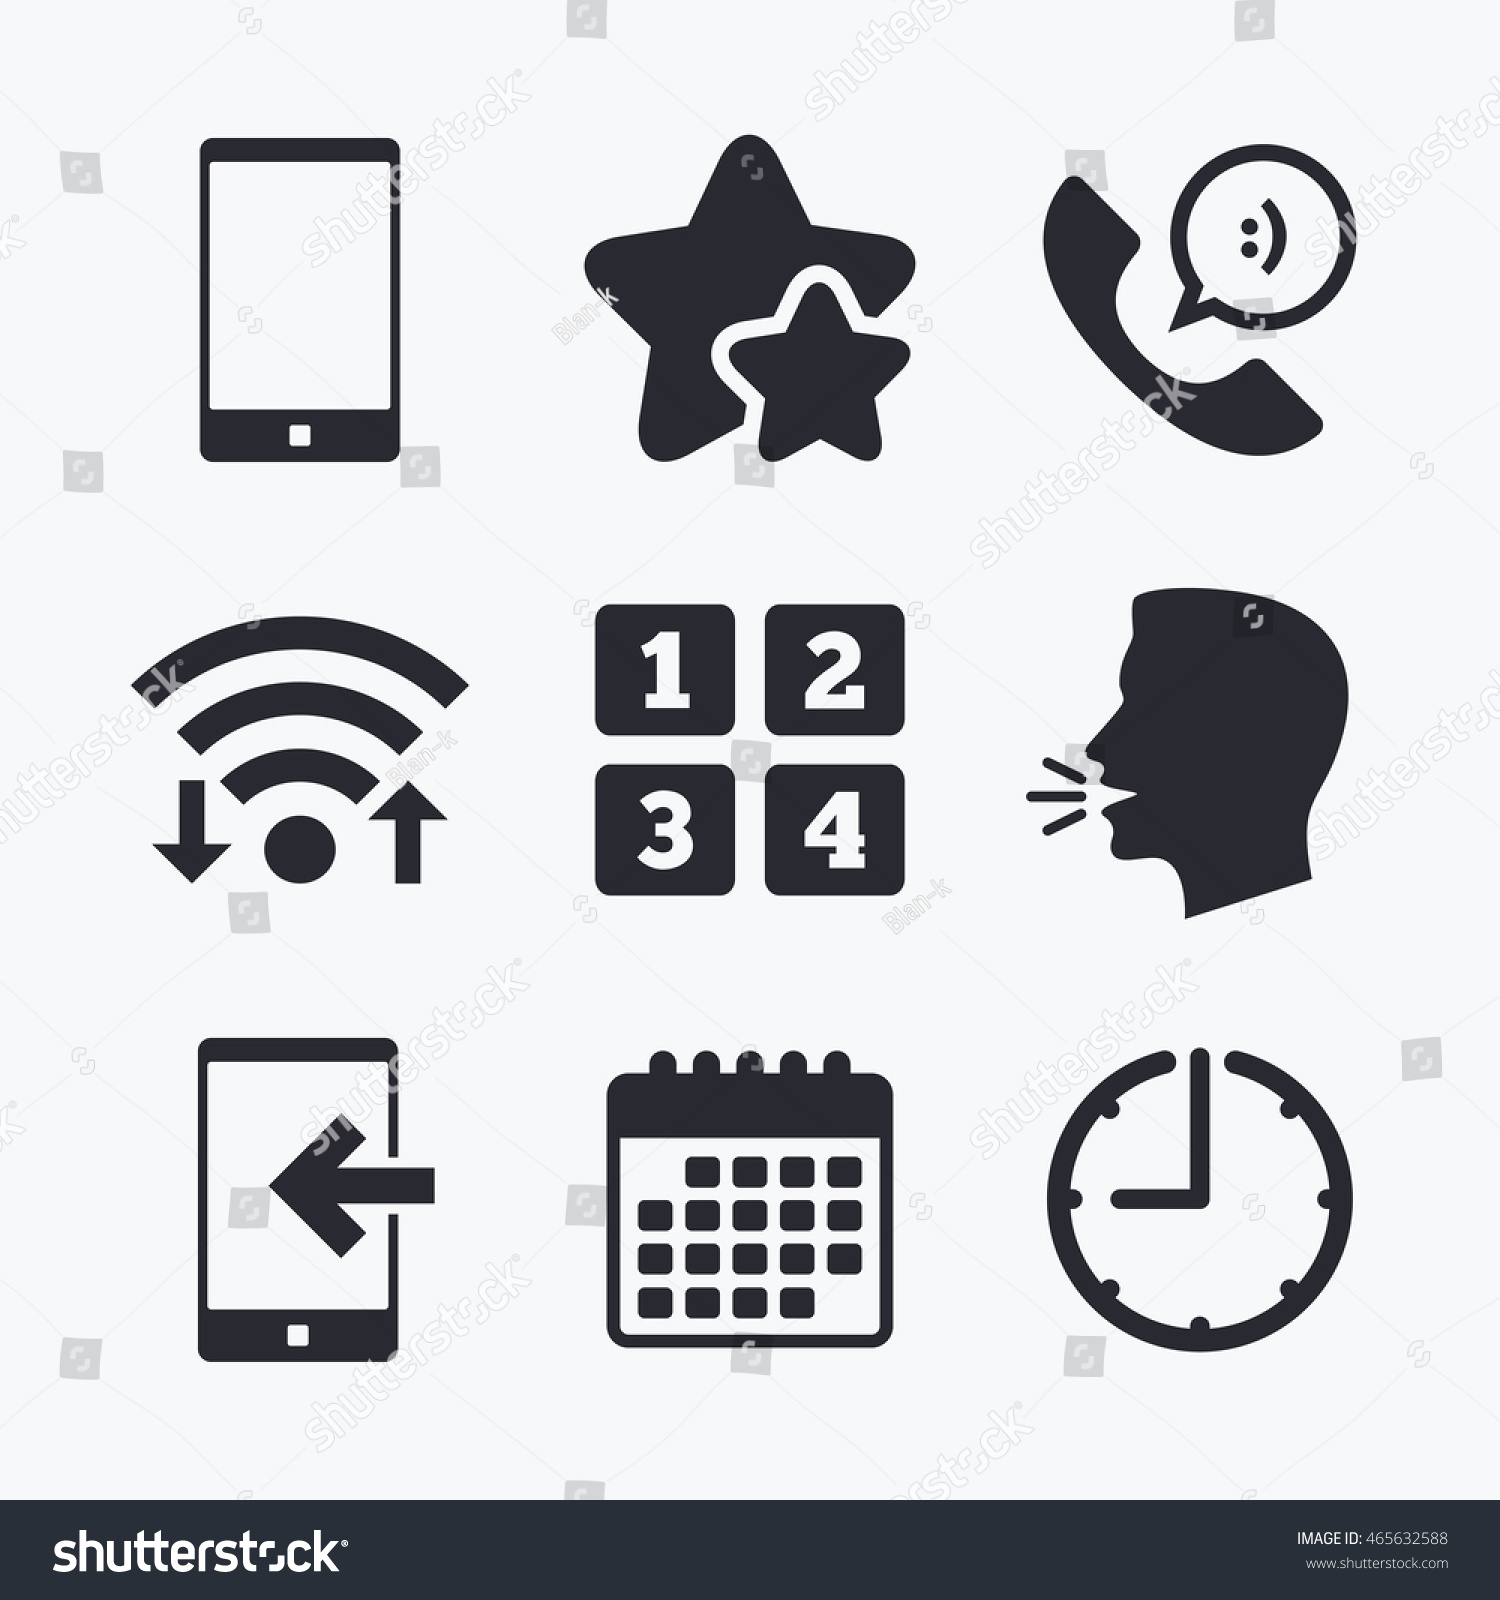 Phone icons smartphone incoming call sign stock vector 465632588 phone icons smartphone incoming call sign call center support symbol cellphone keyboard symbol biocorpaavc